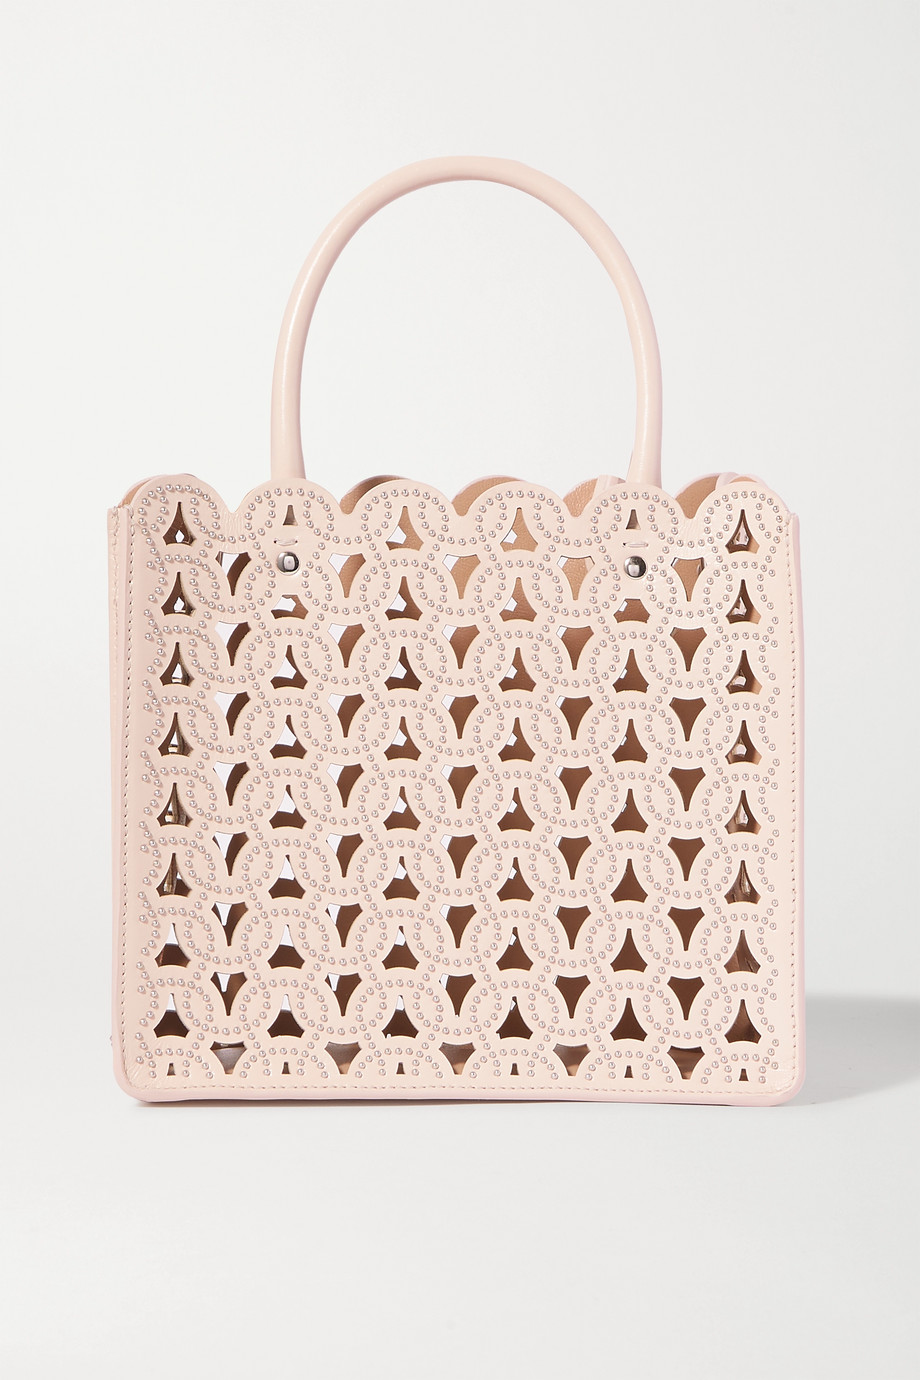 Alaïa Garance mini studded laser-cut leather tote